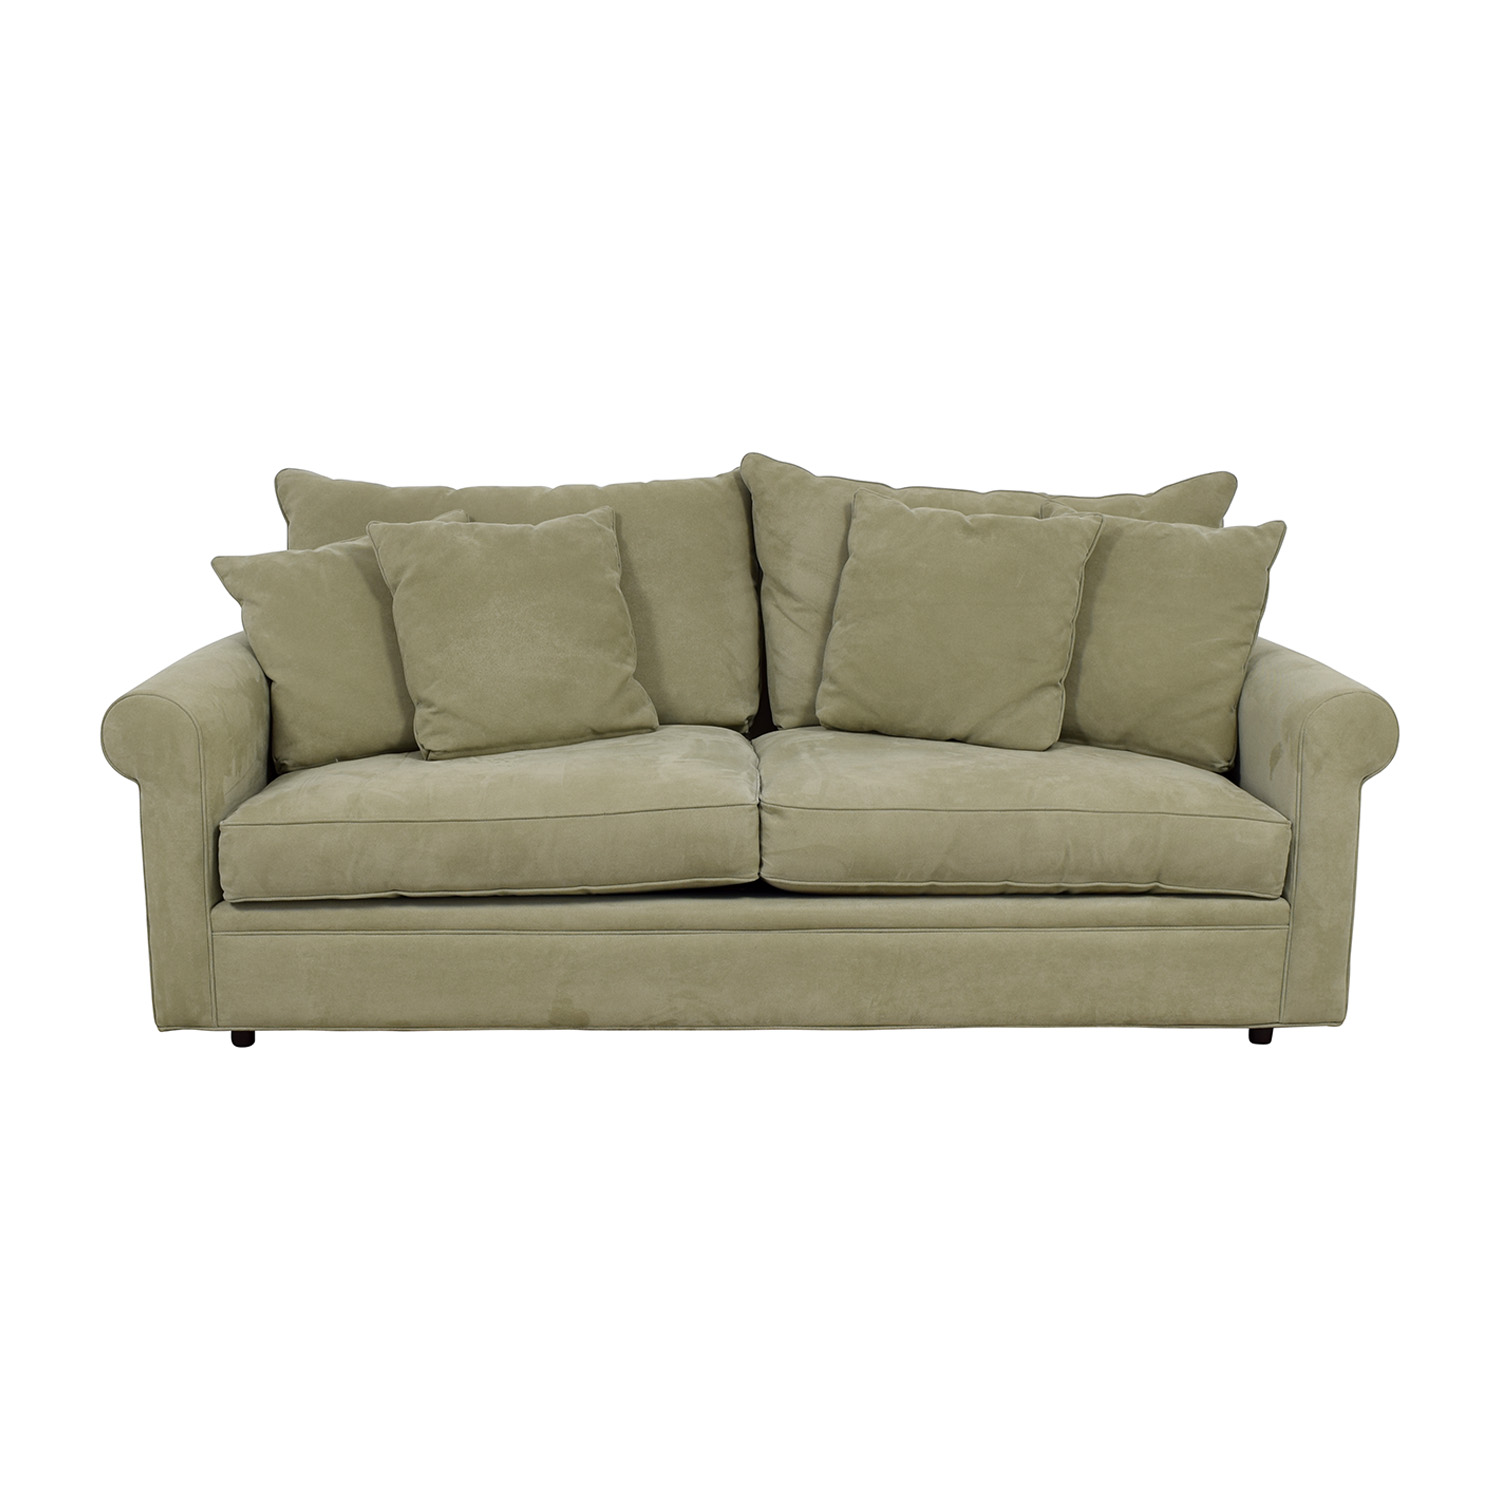 Macy's Macy's Sage Green Two-Cushion Sofa Sofas